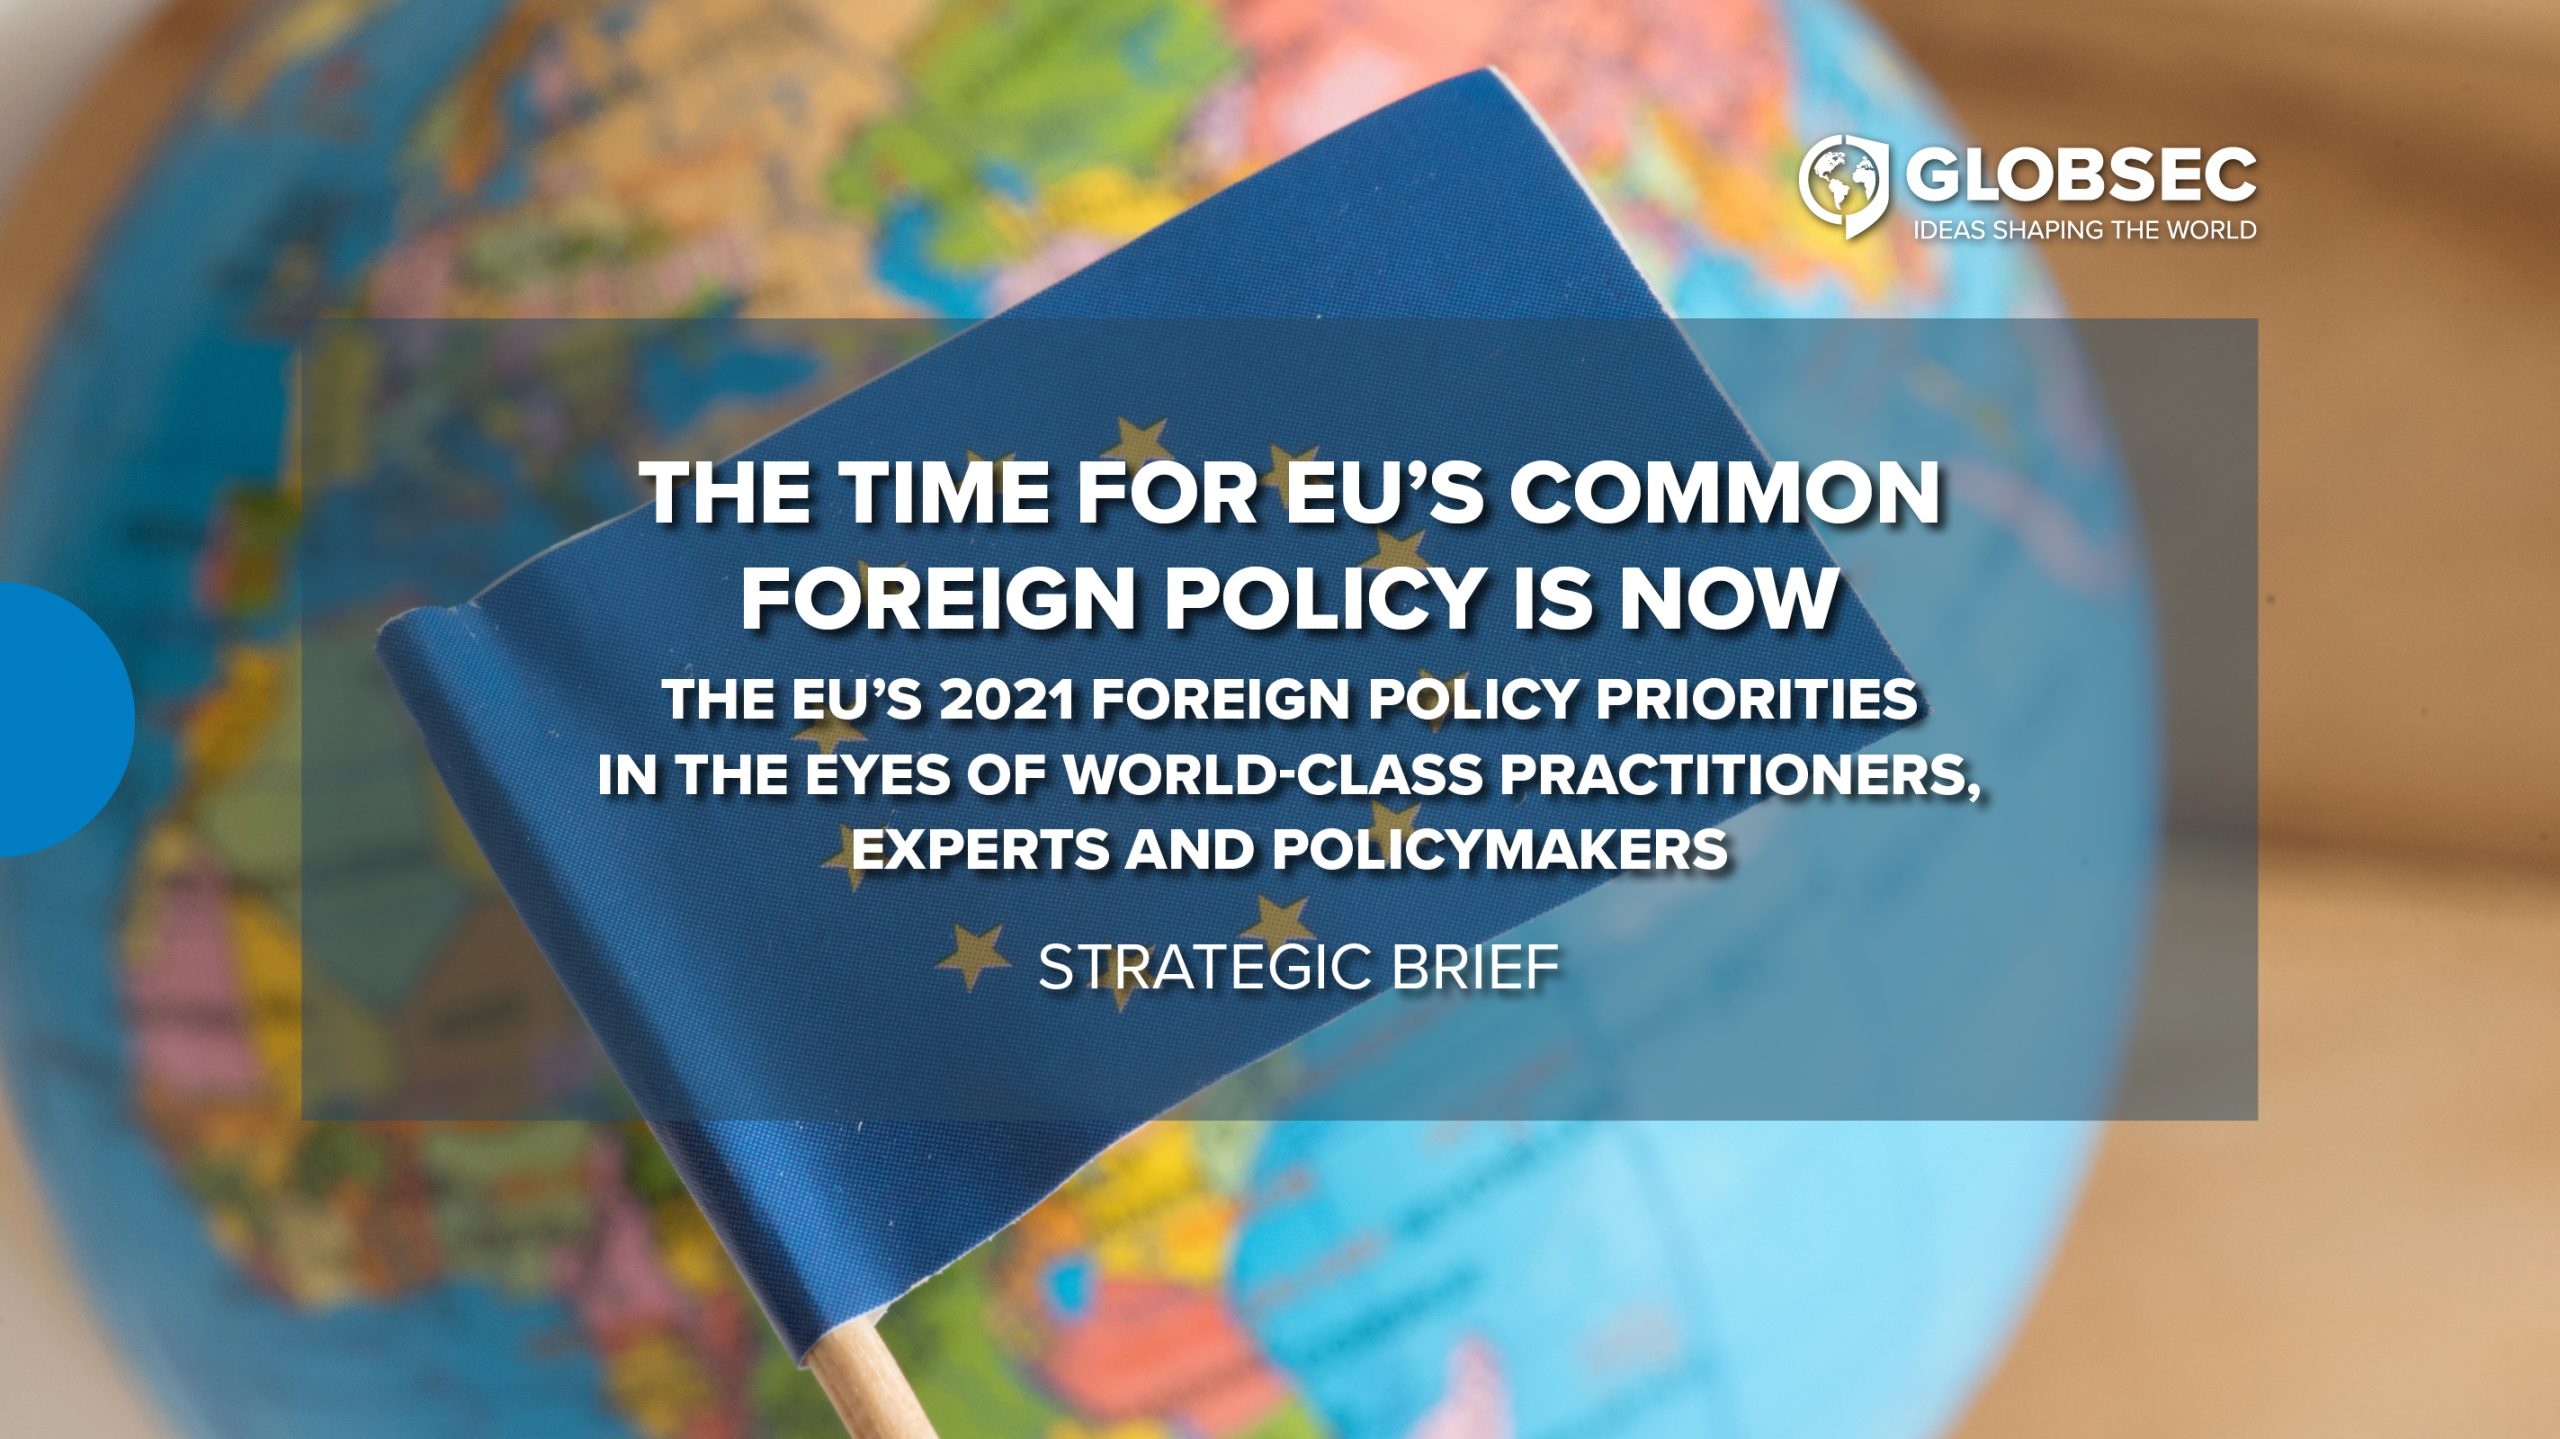 The Time for EU's Common Foreign Policy is Now